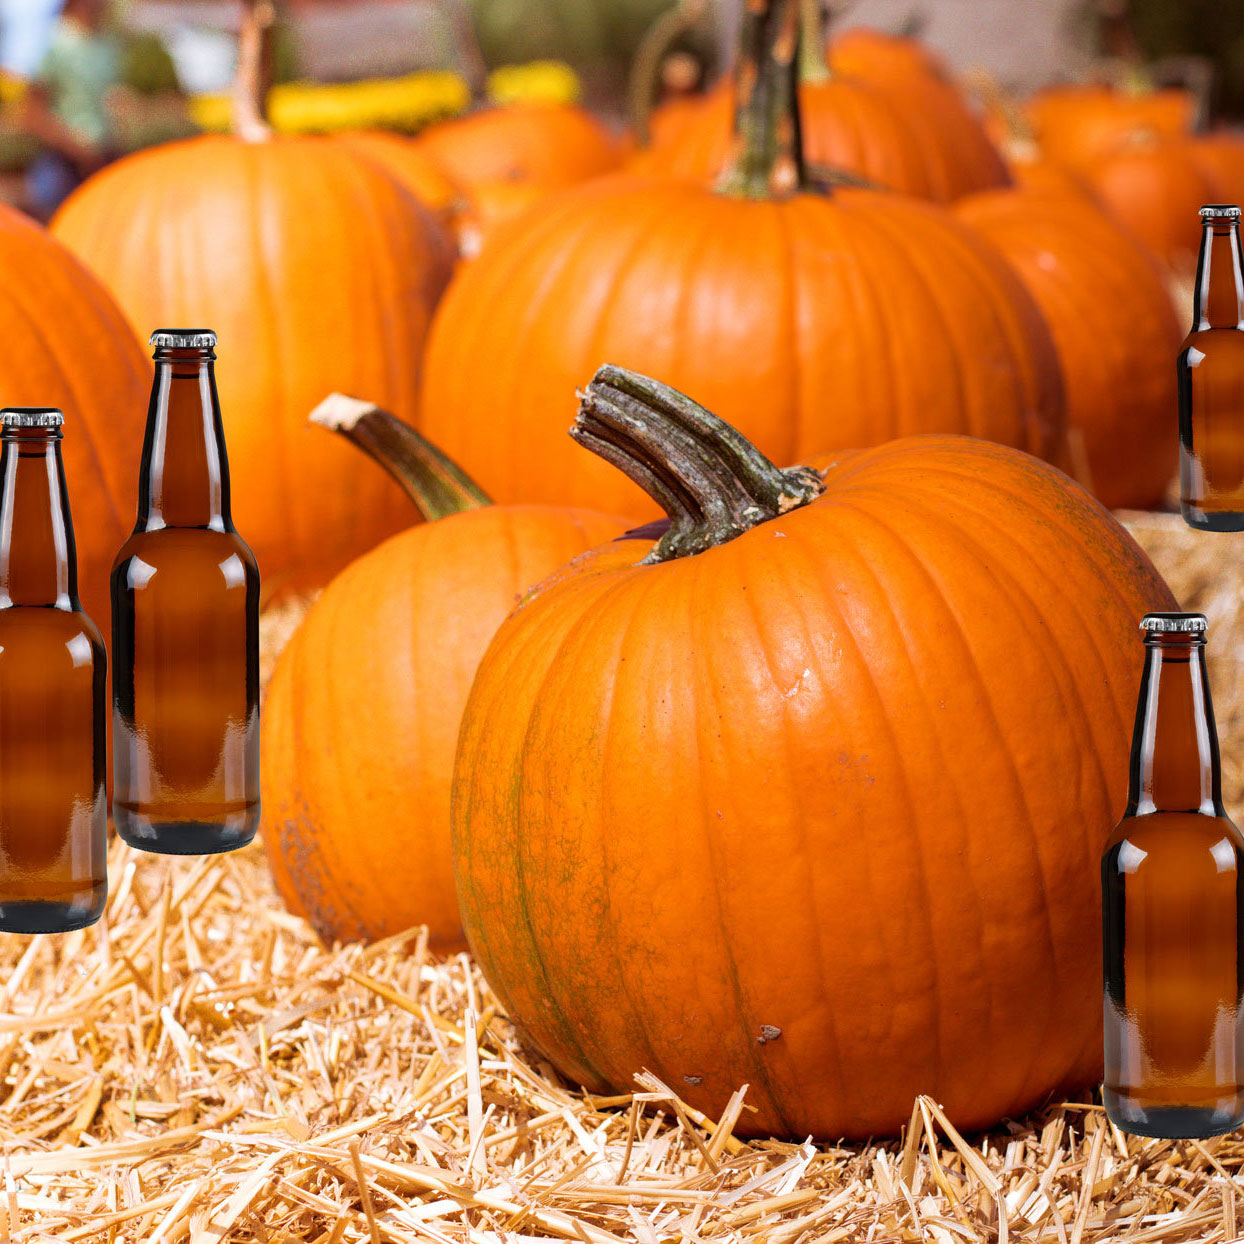 We Tried All the Pumpkin Beers We Could Find—Here Are the 2 Worth Buying